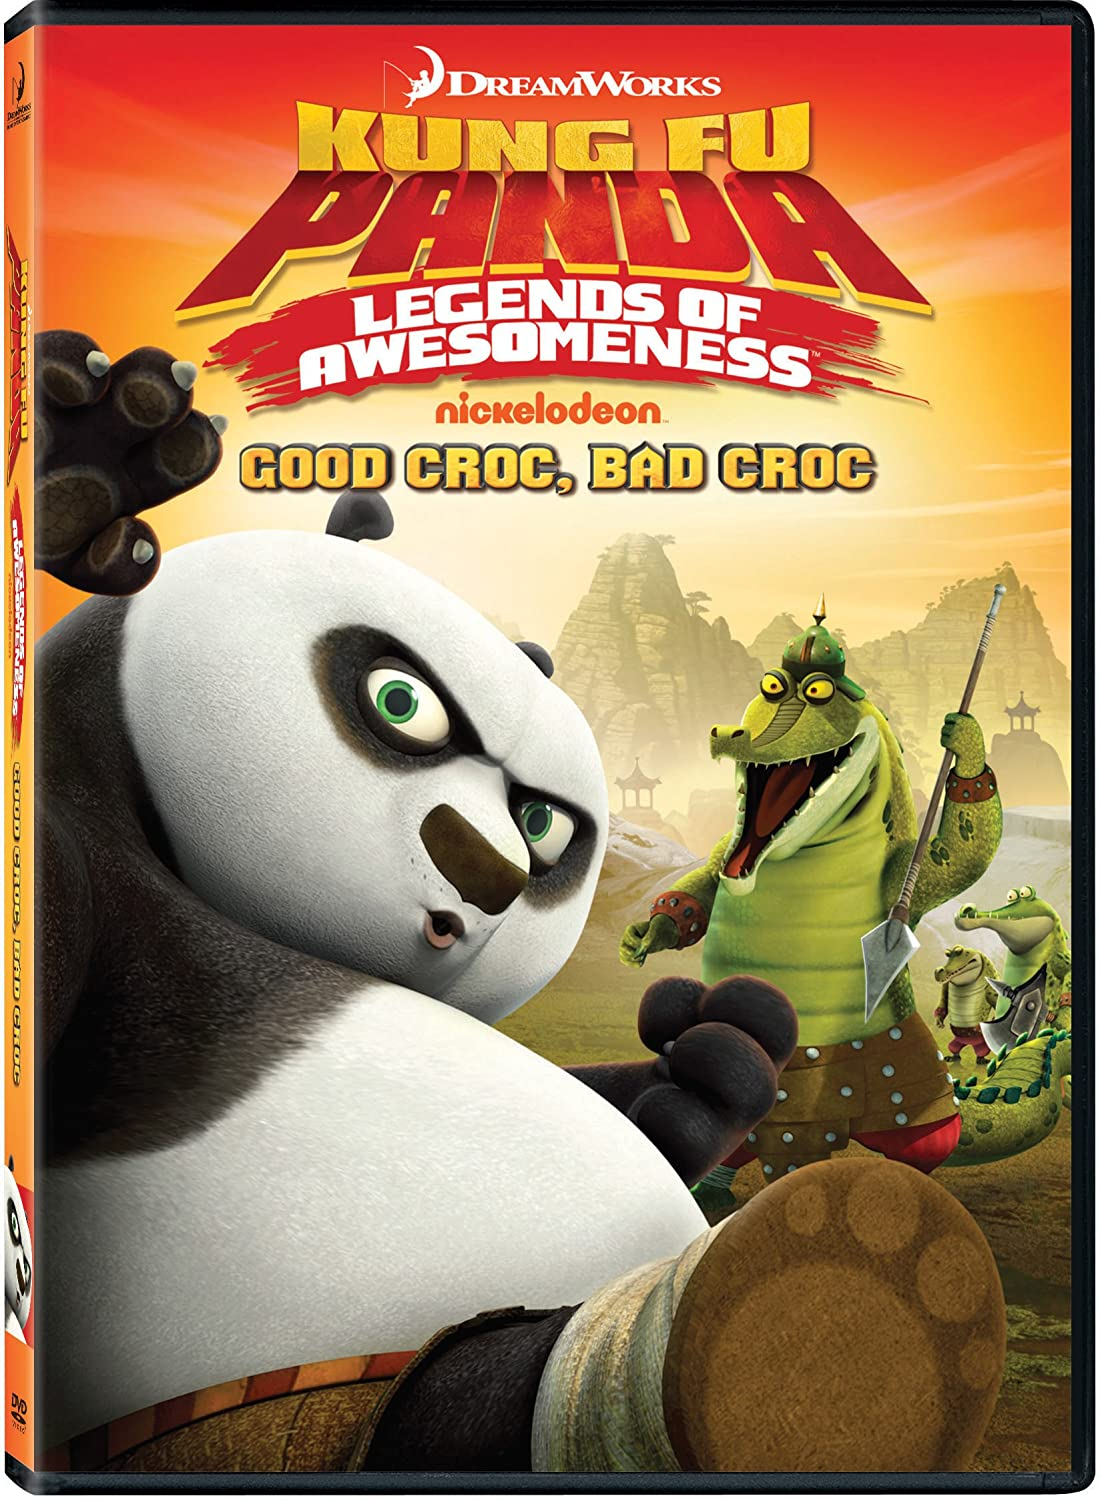 Kung Fu Panda: Legends of Awesomeness - Good Croc, Bad Croc